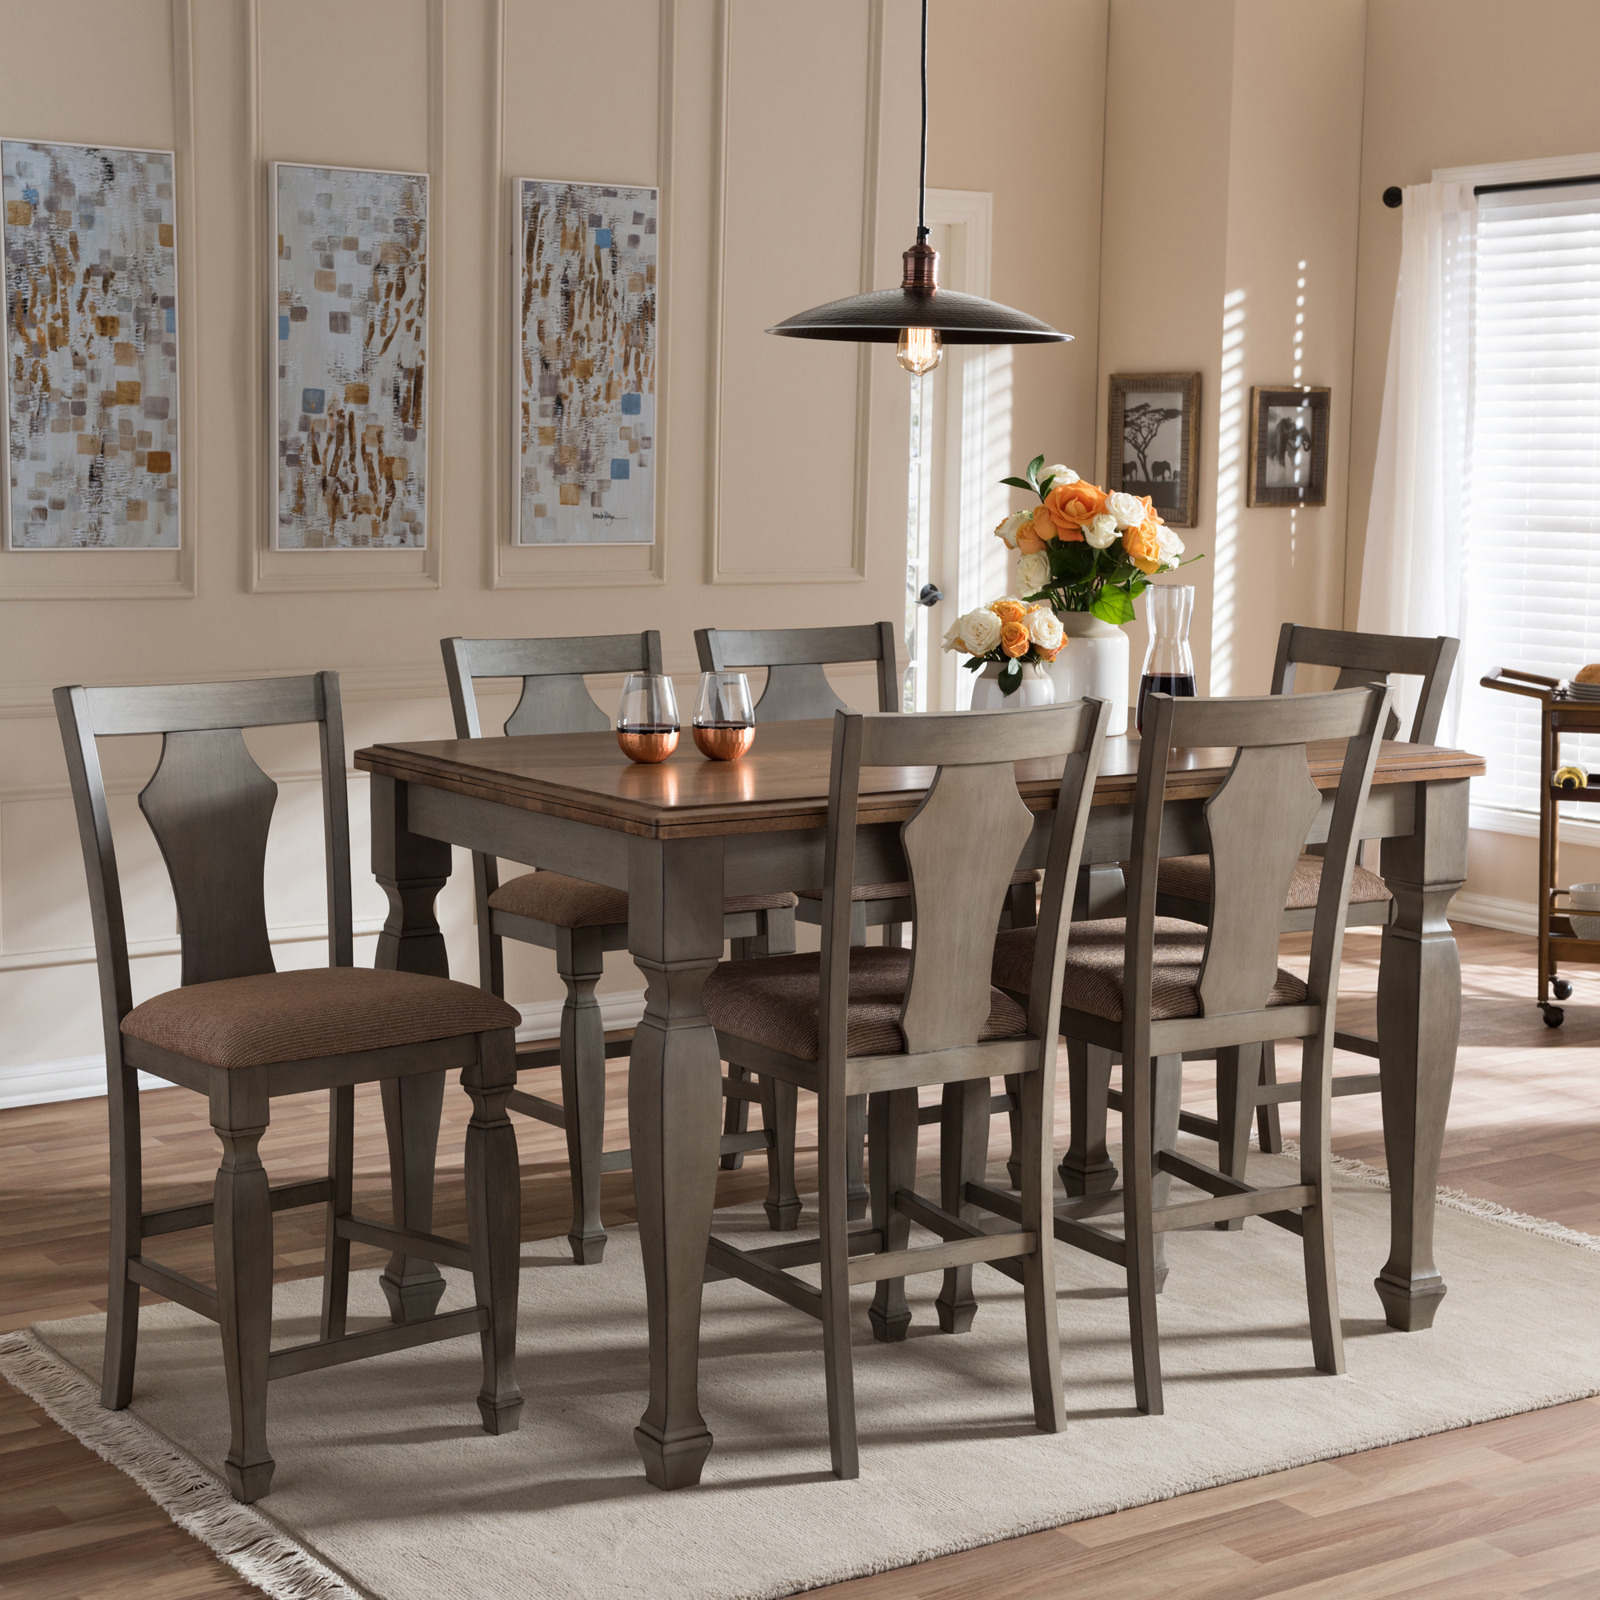 design also and signature cool furniture by trends kitchen set room ideas cottage ashley cottages retreat from dining collection